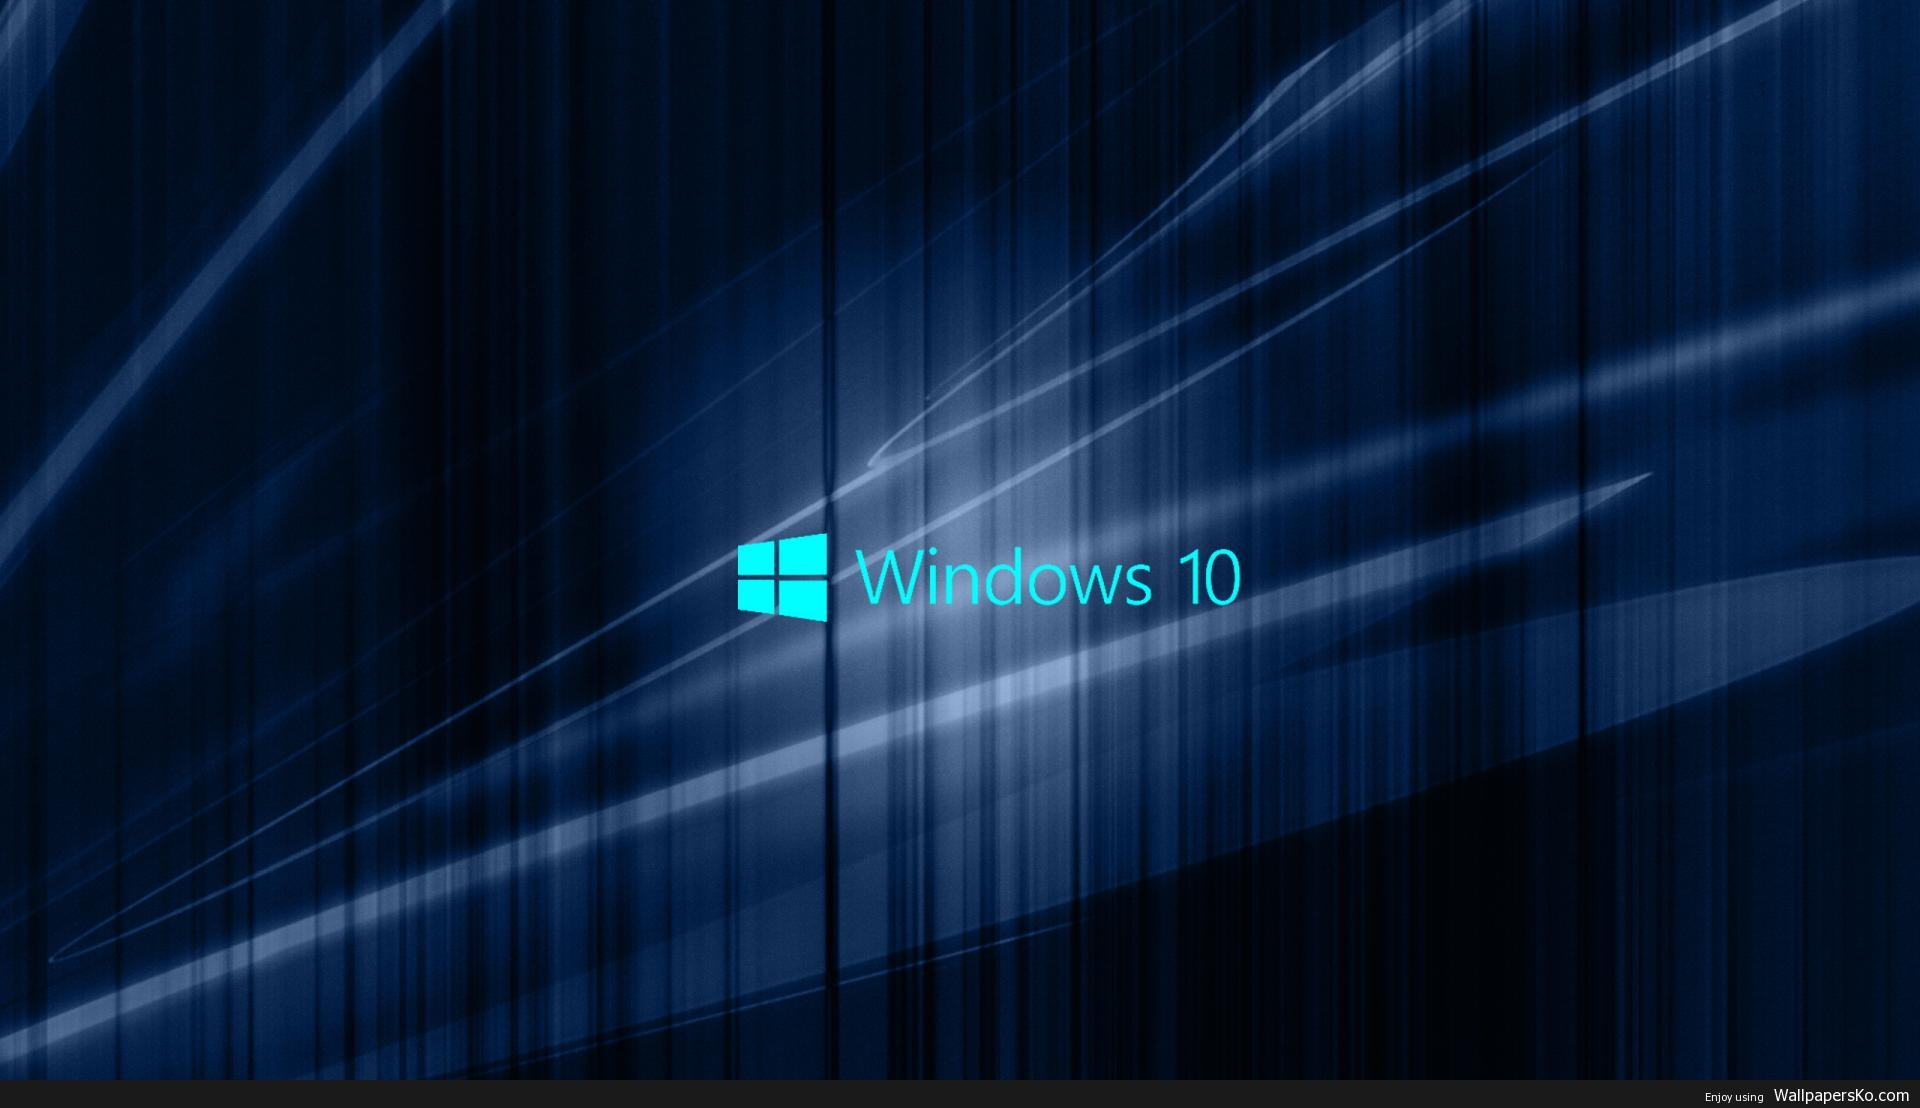 windows 10 pro wallpaper